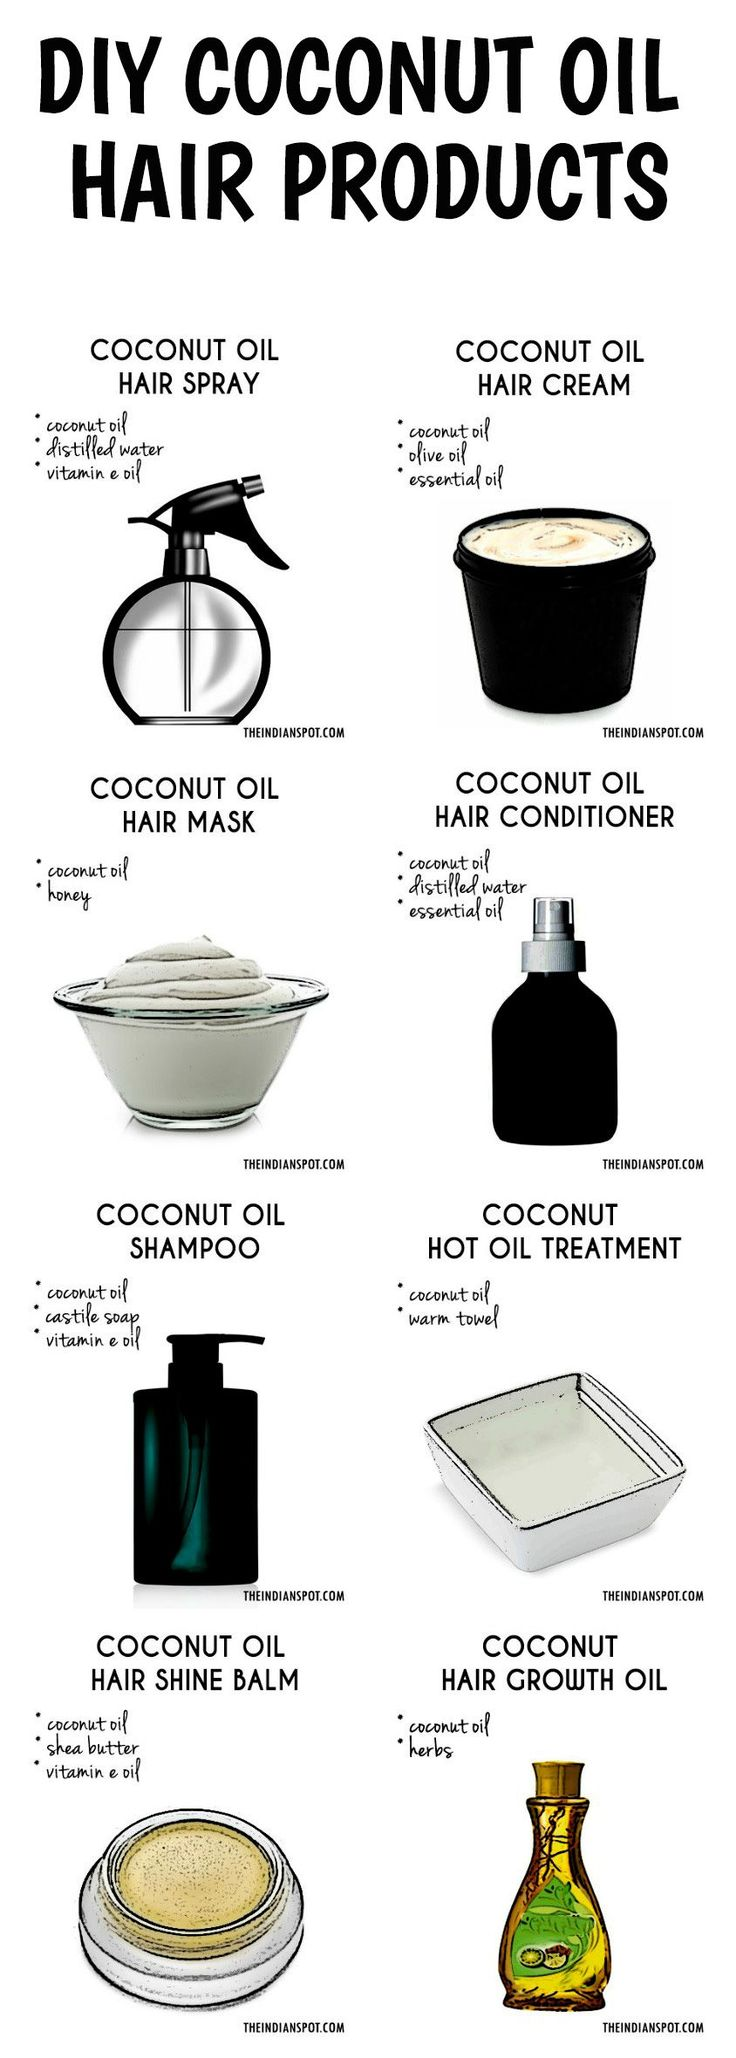 coconut oil: learn the good bad and the ugly: http://curlsunderstood.com/coconut-oil-natural-hair-regimen